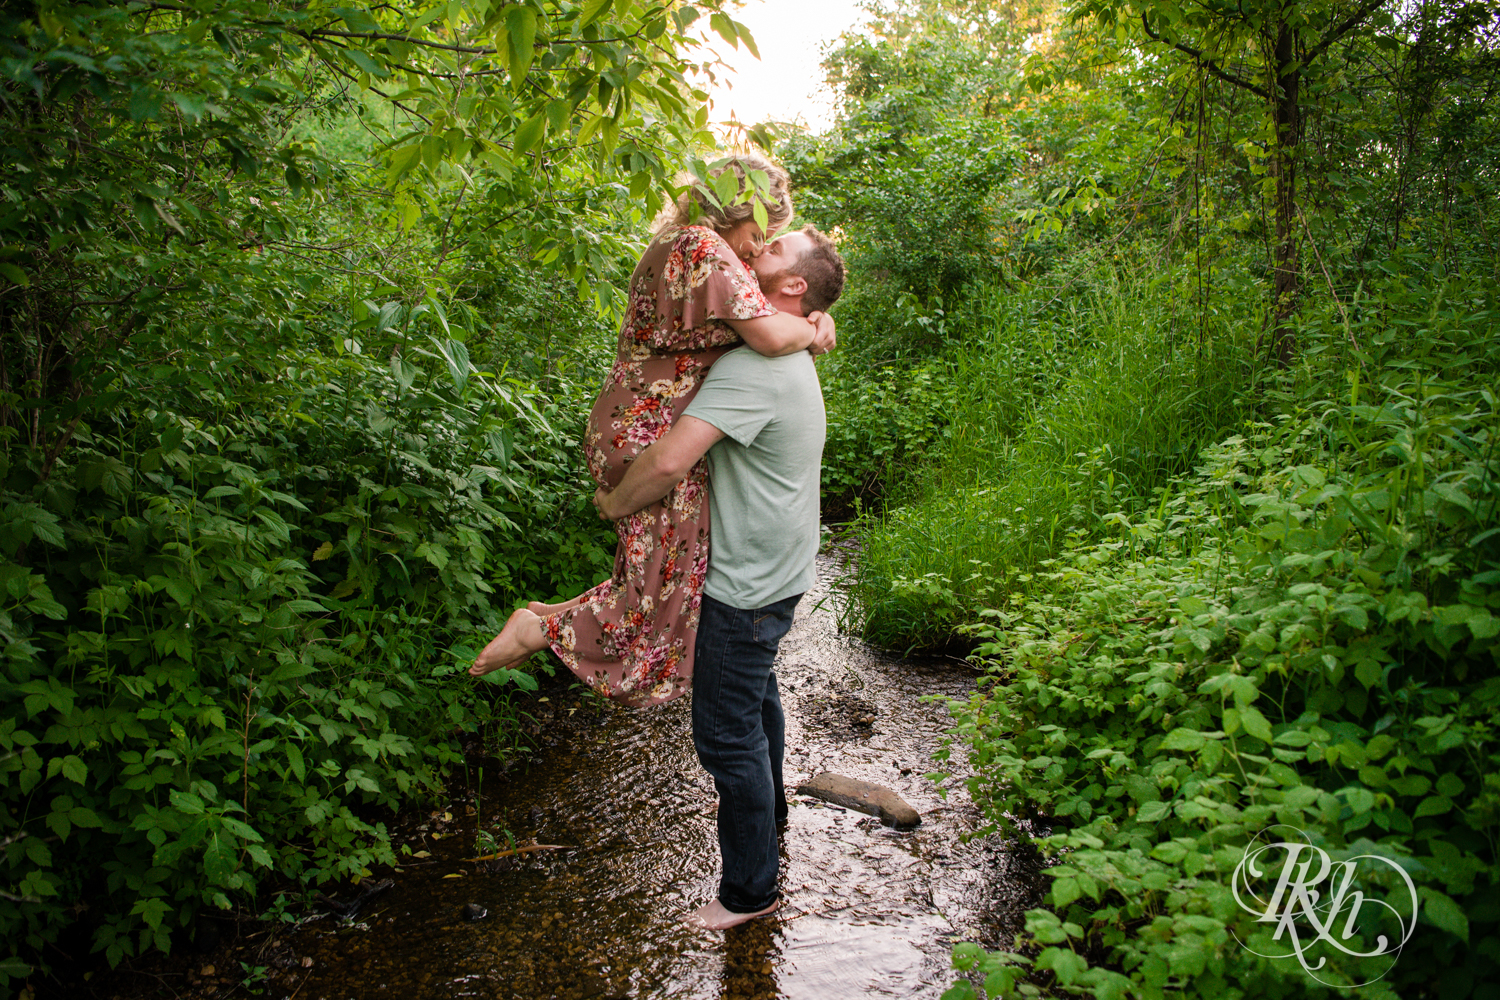 Constance & Josh - Minnesota Engagement Photography - Lebanon Hills Regional Park - RKH Images - Blog (16 of 18).jpg